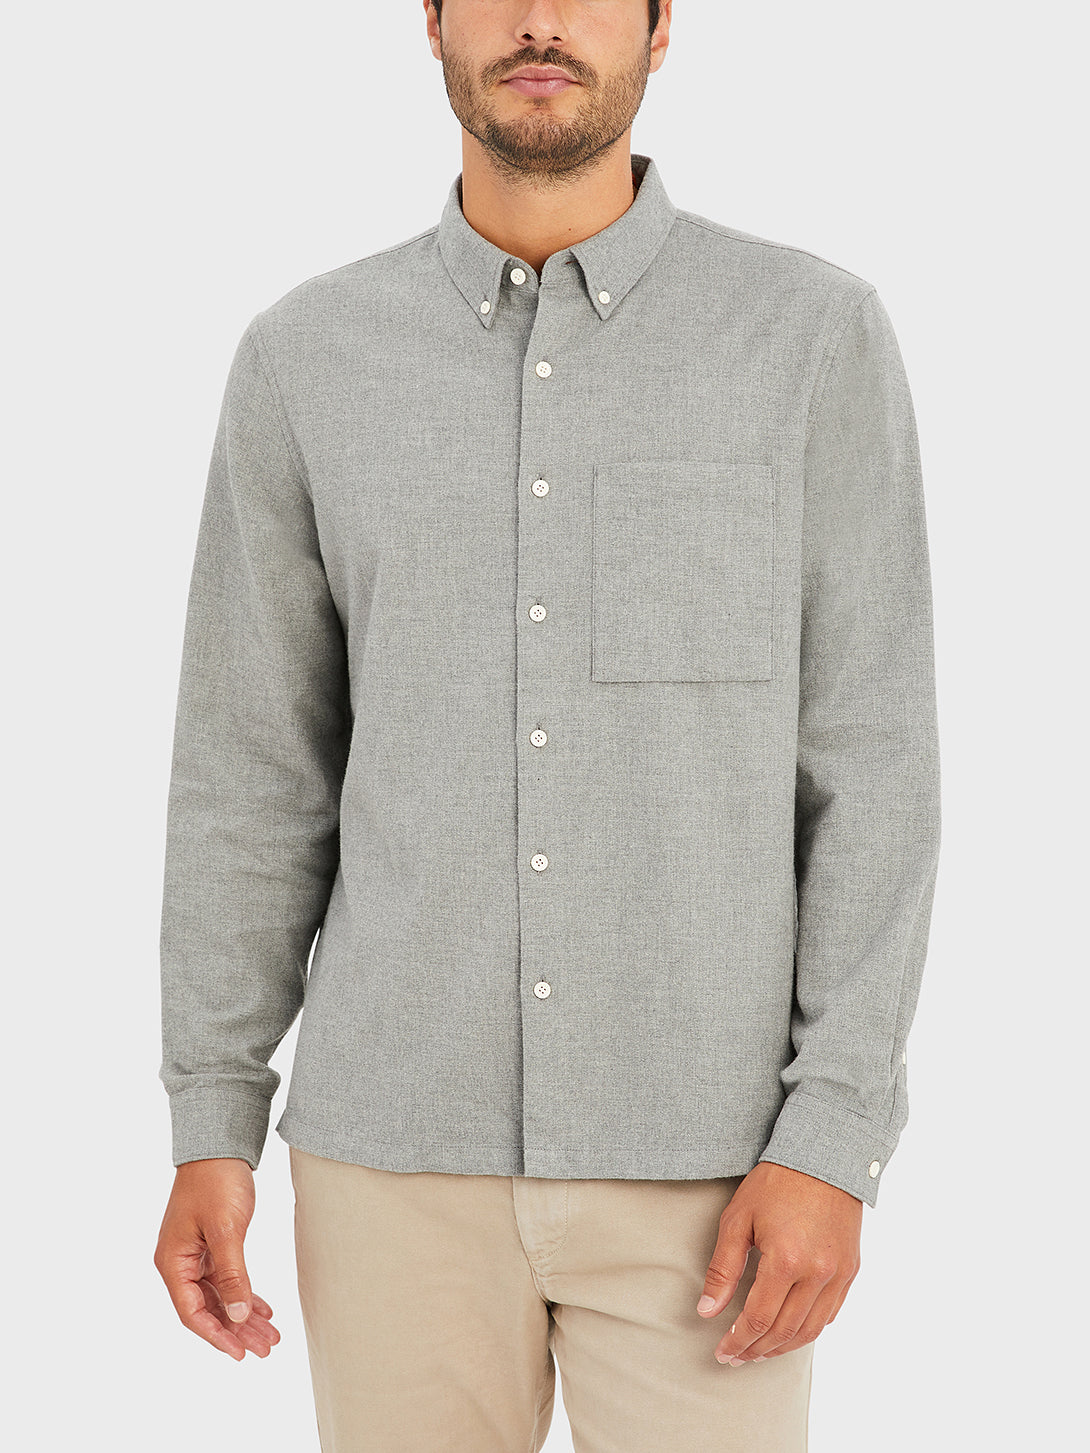 ONS VANCE SHIRT HEATHER GREY black friday deals